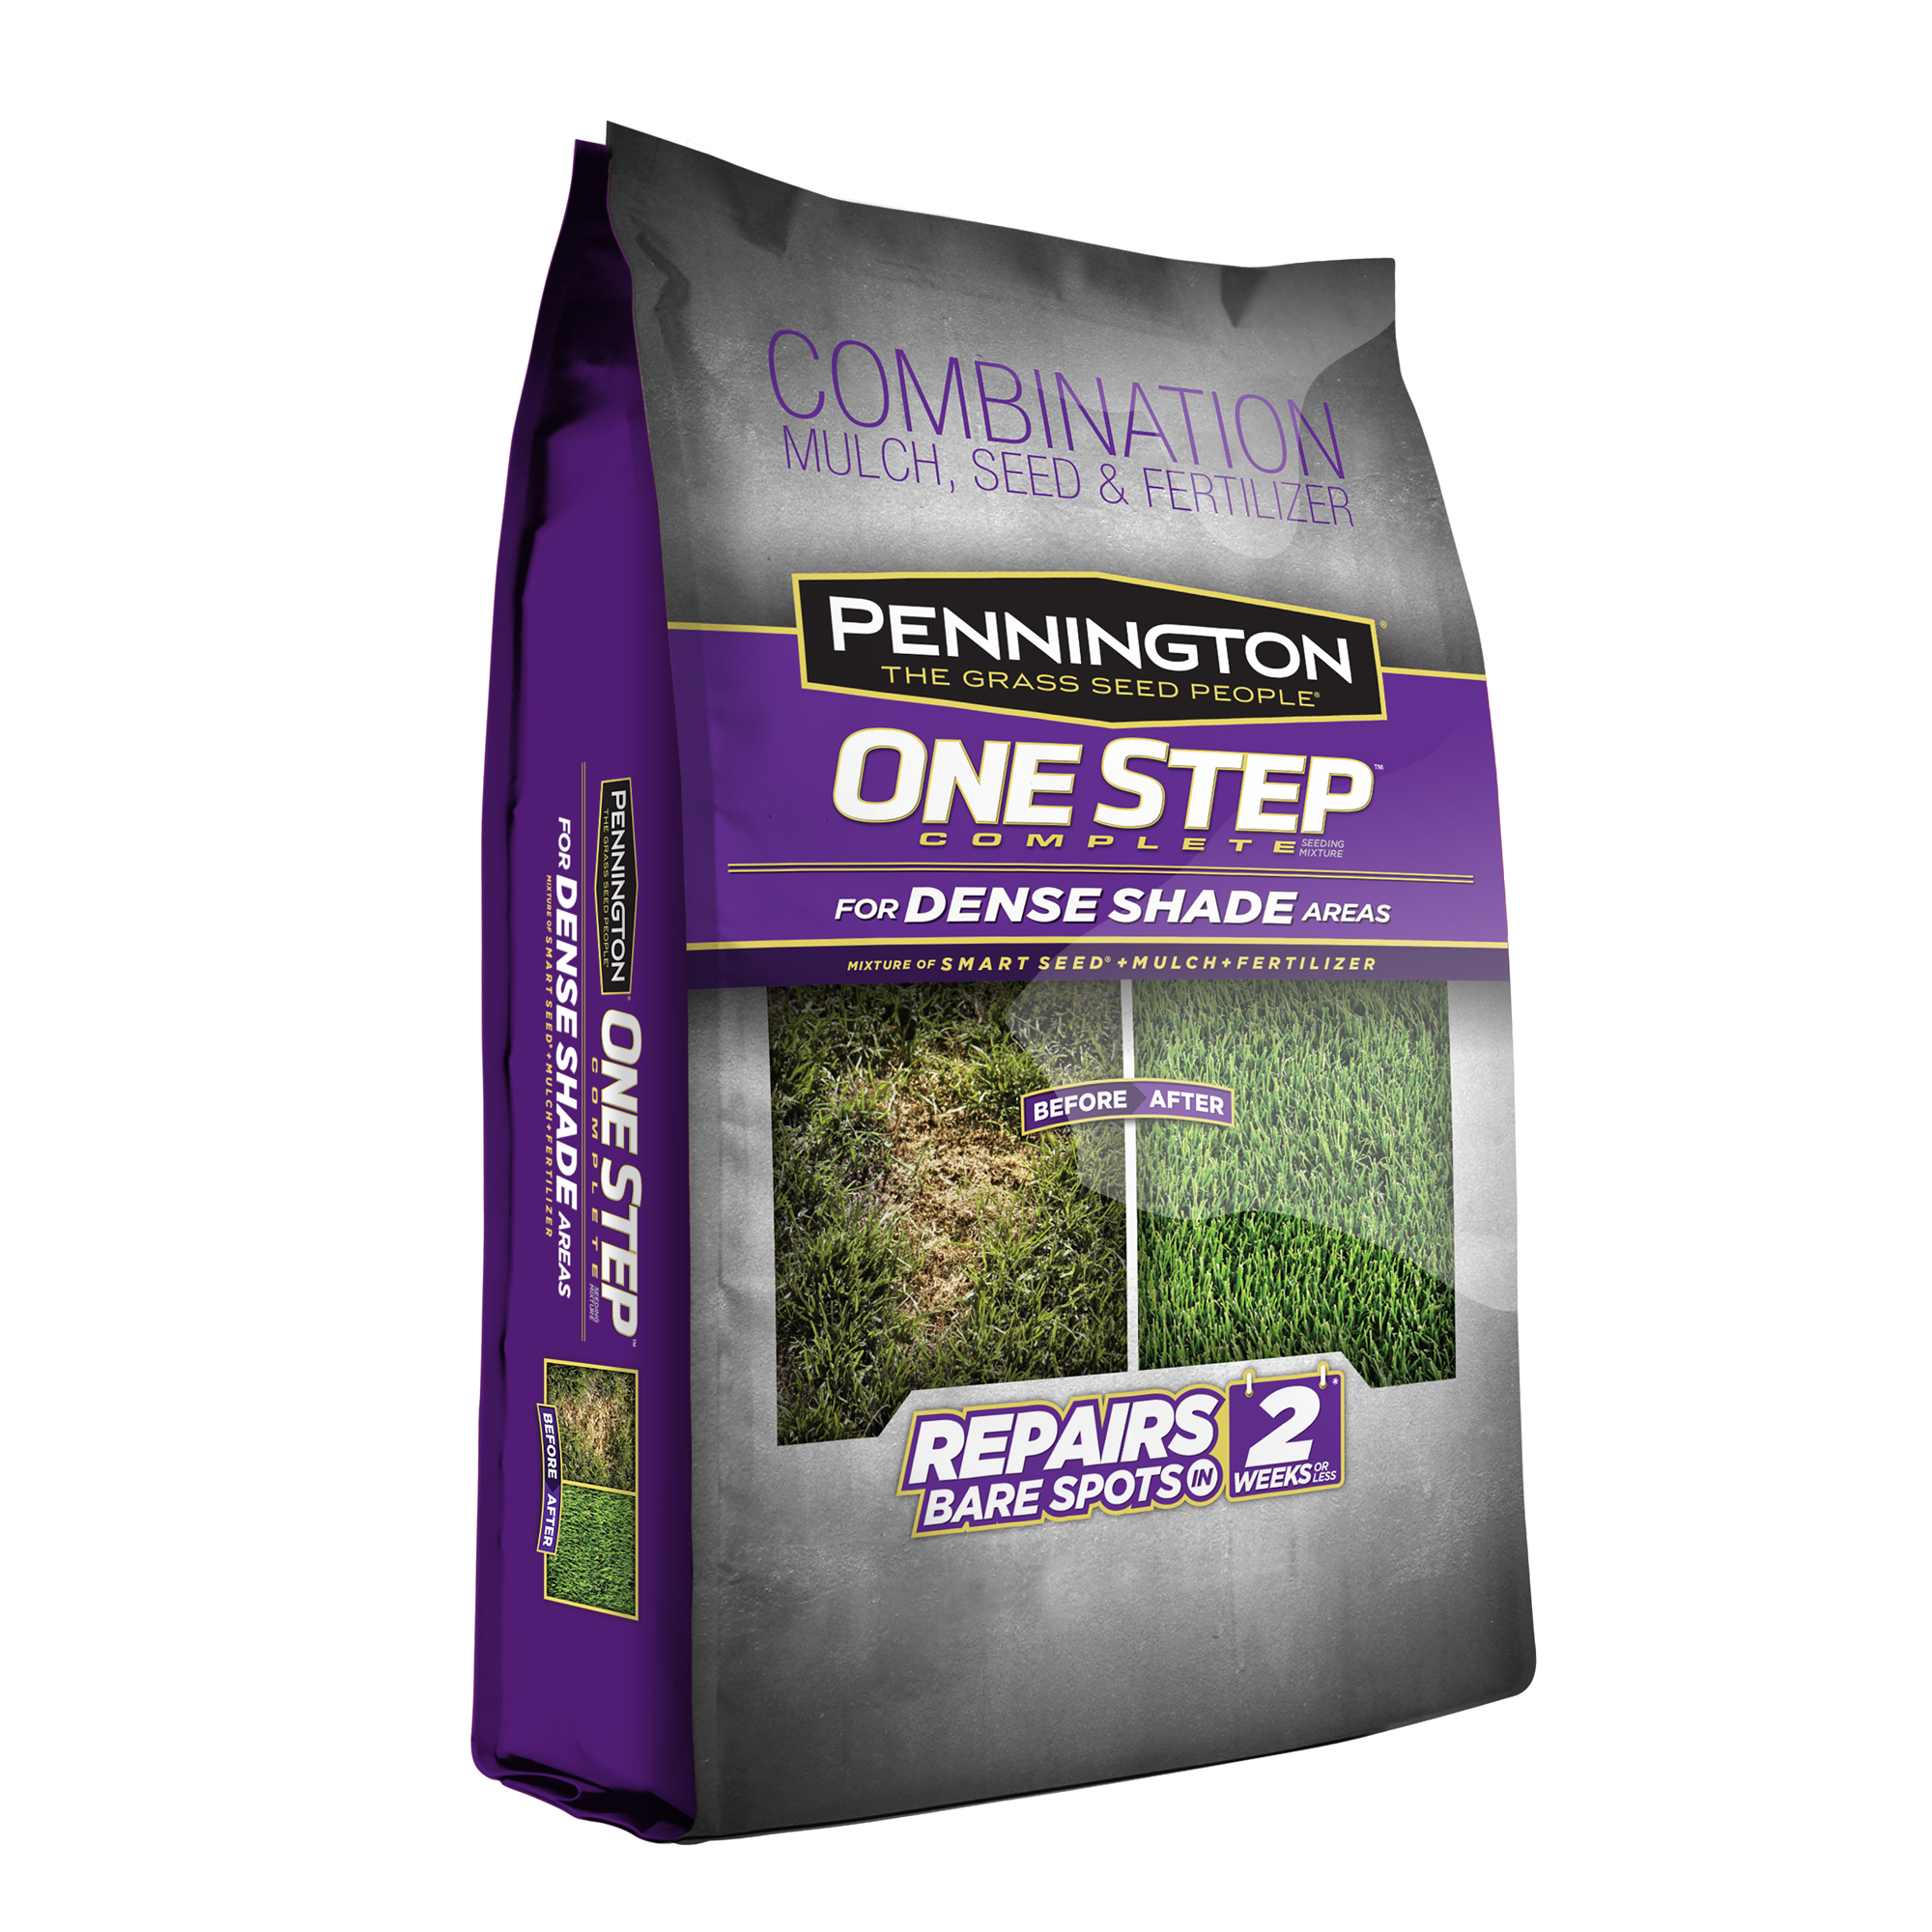 Pennington Grass Seed One Step Complete Dense Shade, 8.3 lb